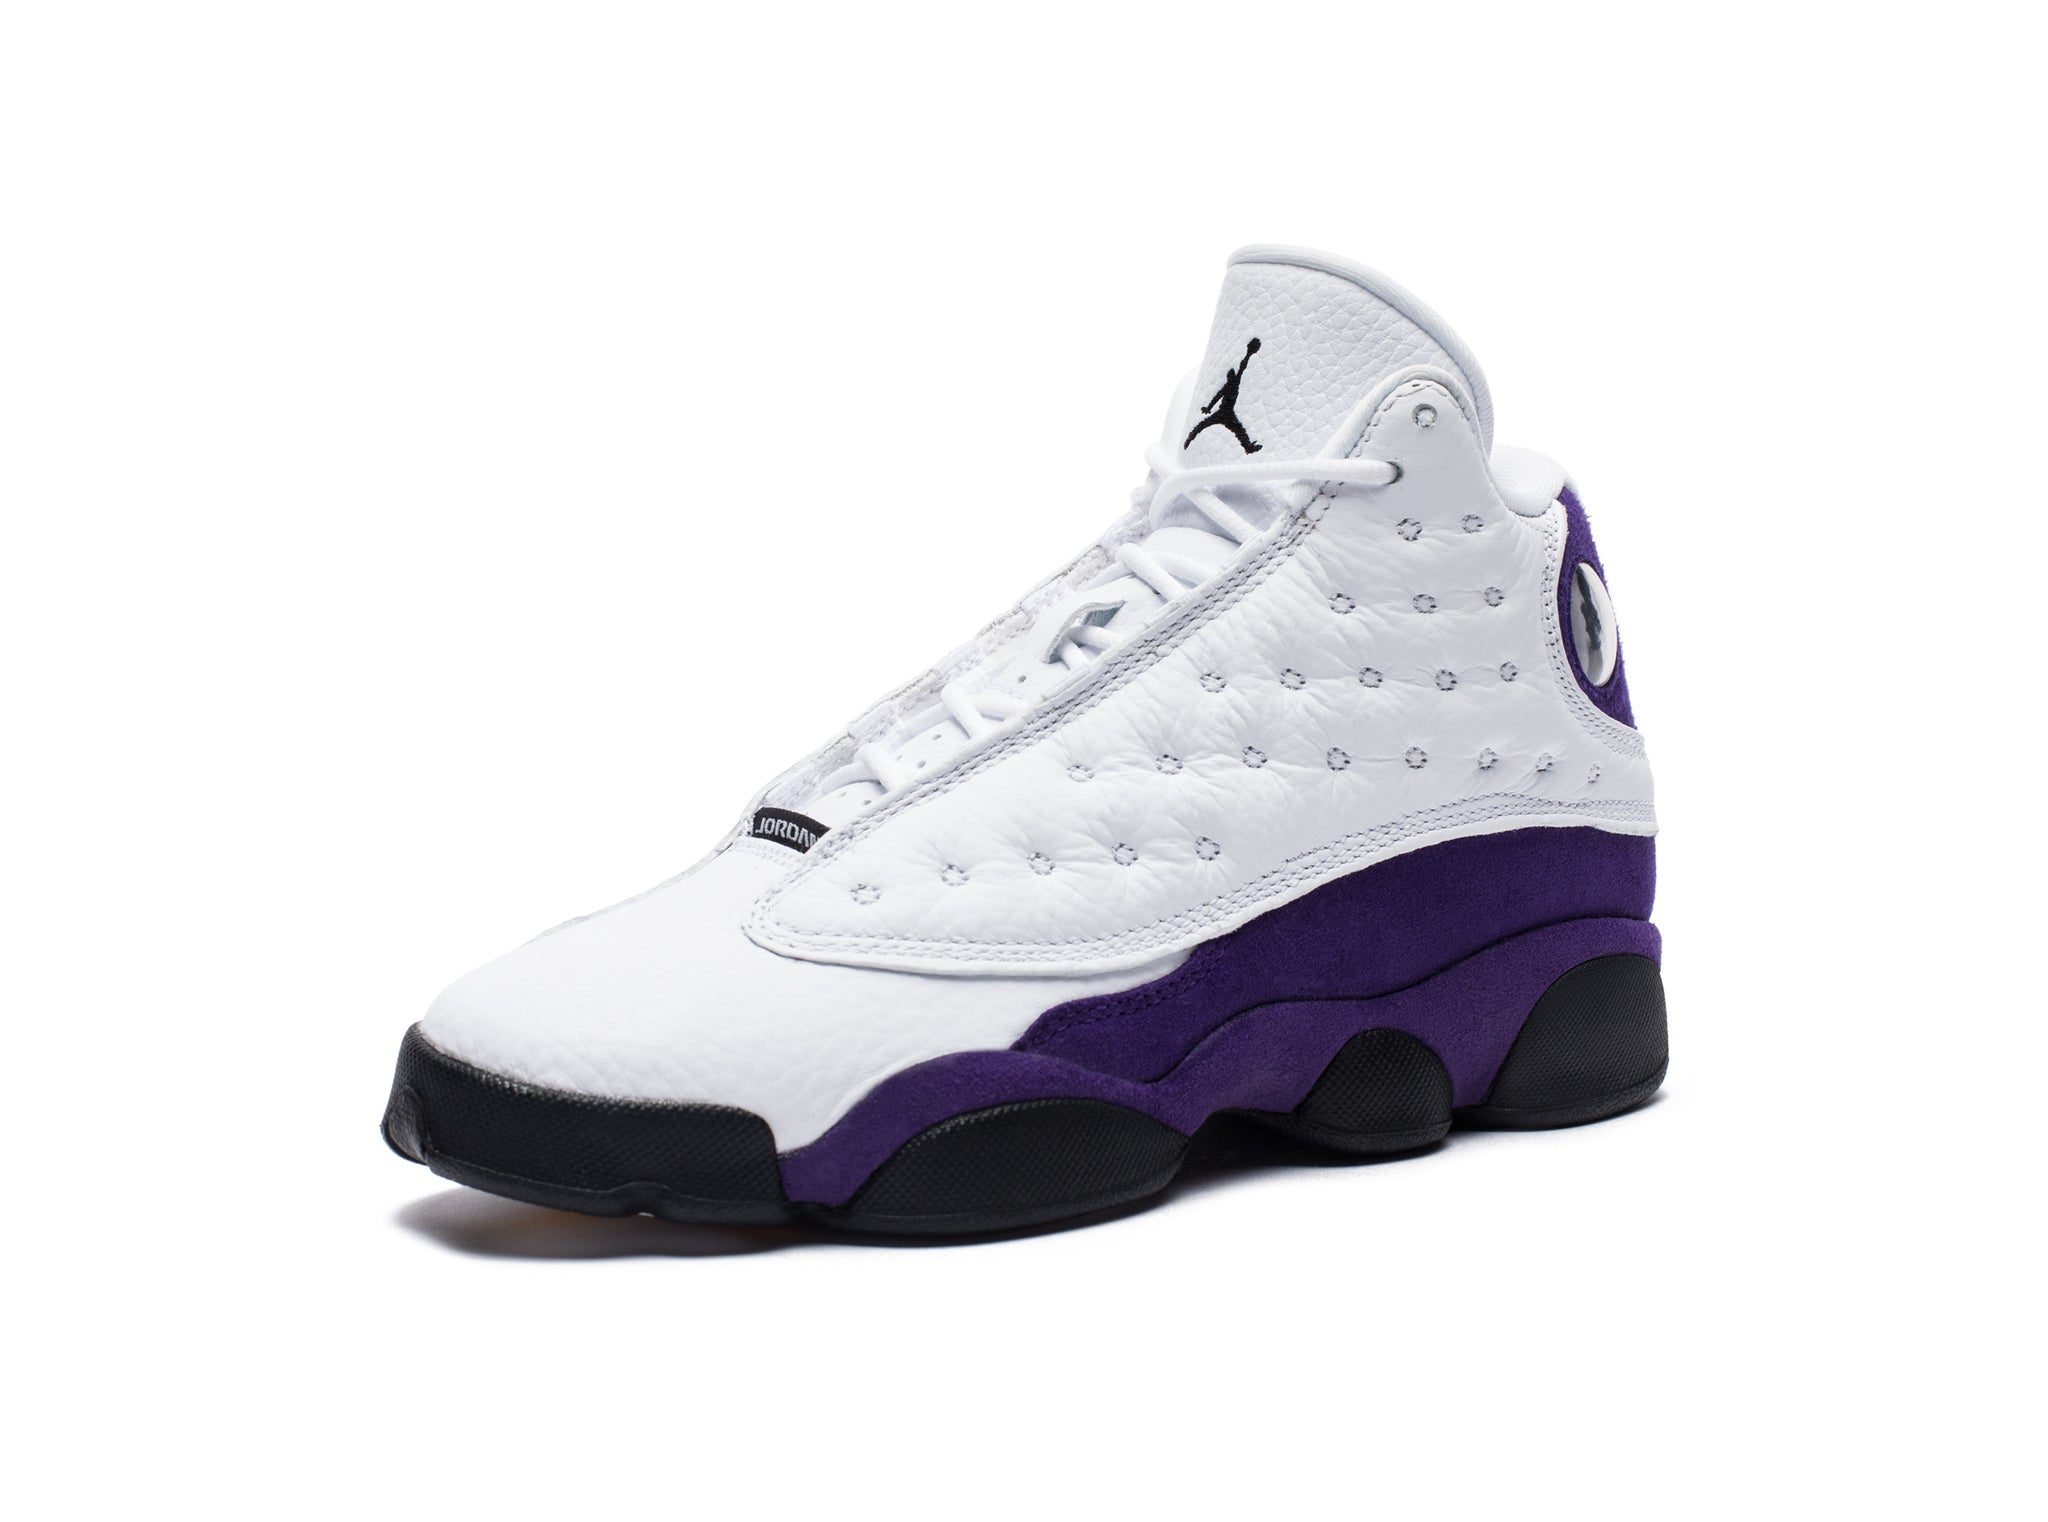 AJ 13 RETRO - WHITE/BLACK/COURTPURPLE/UNIVERSITYGOLD